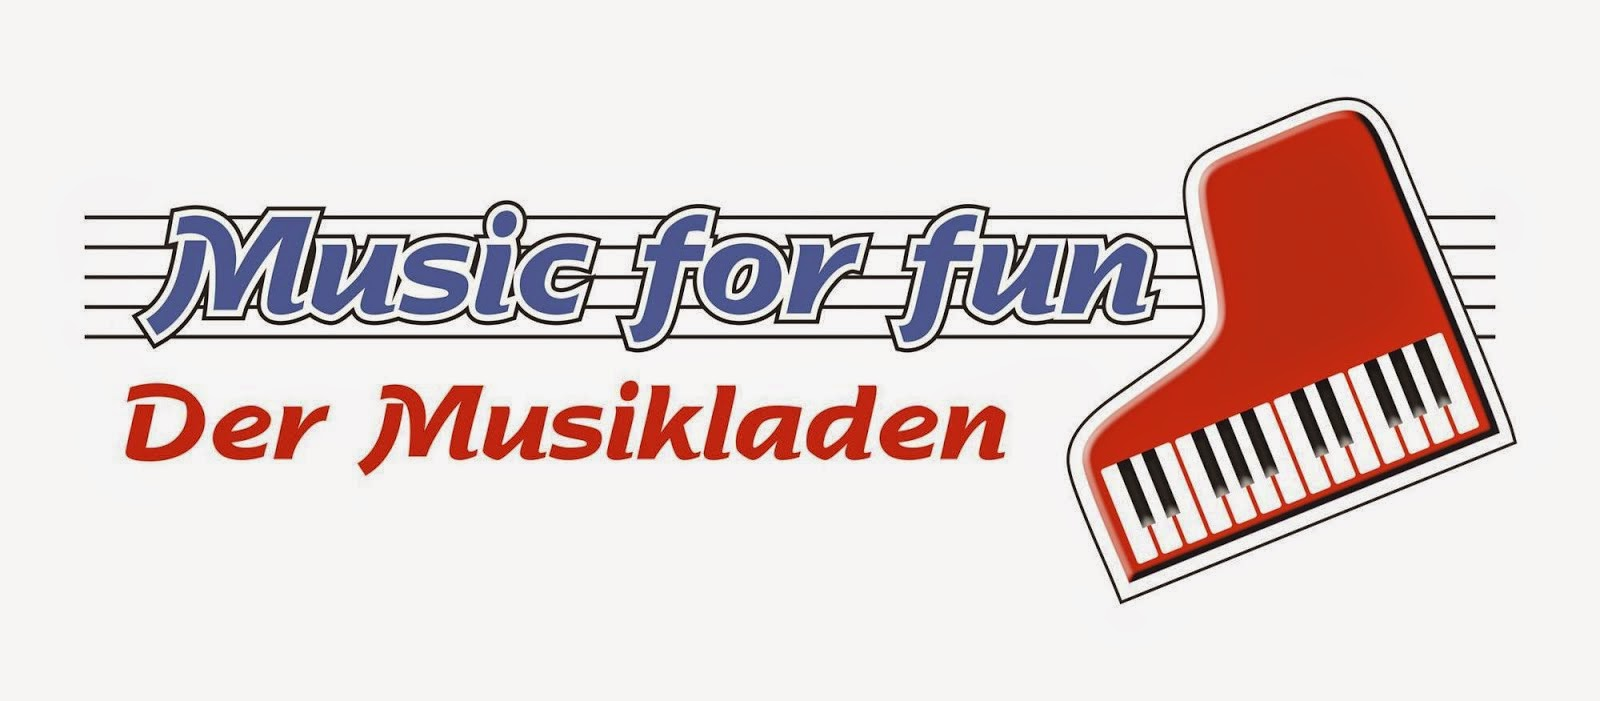 Music for fun - Musikladen